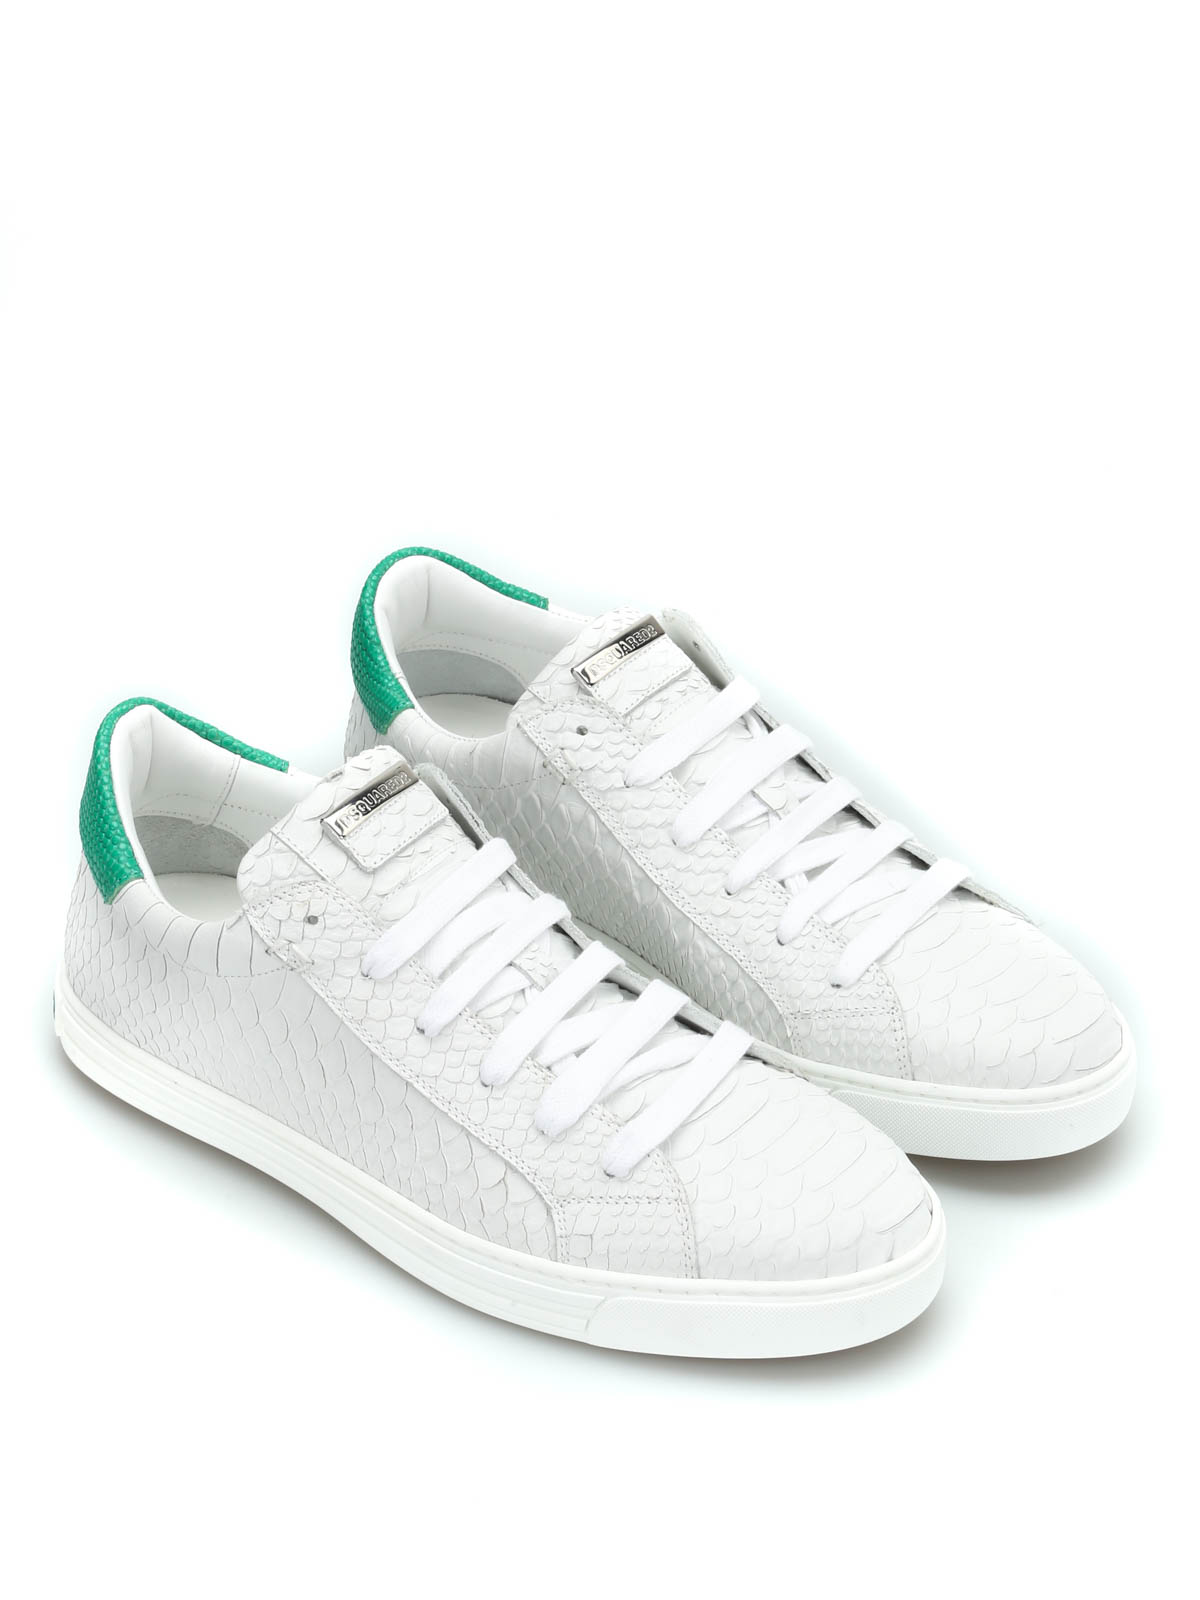 36845c264a Dsquared2 - Tennis Club sneakers - trainers - S16SN103 446 M243